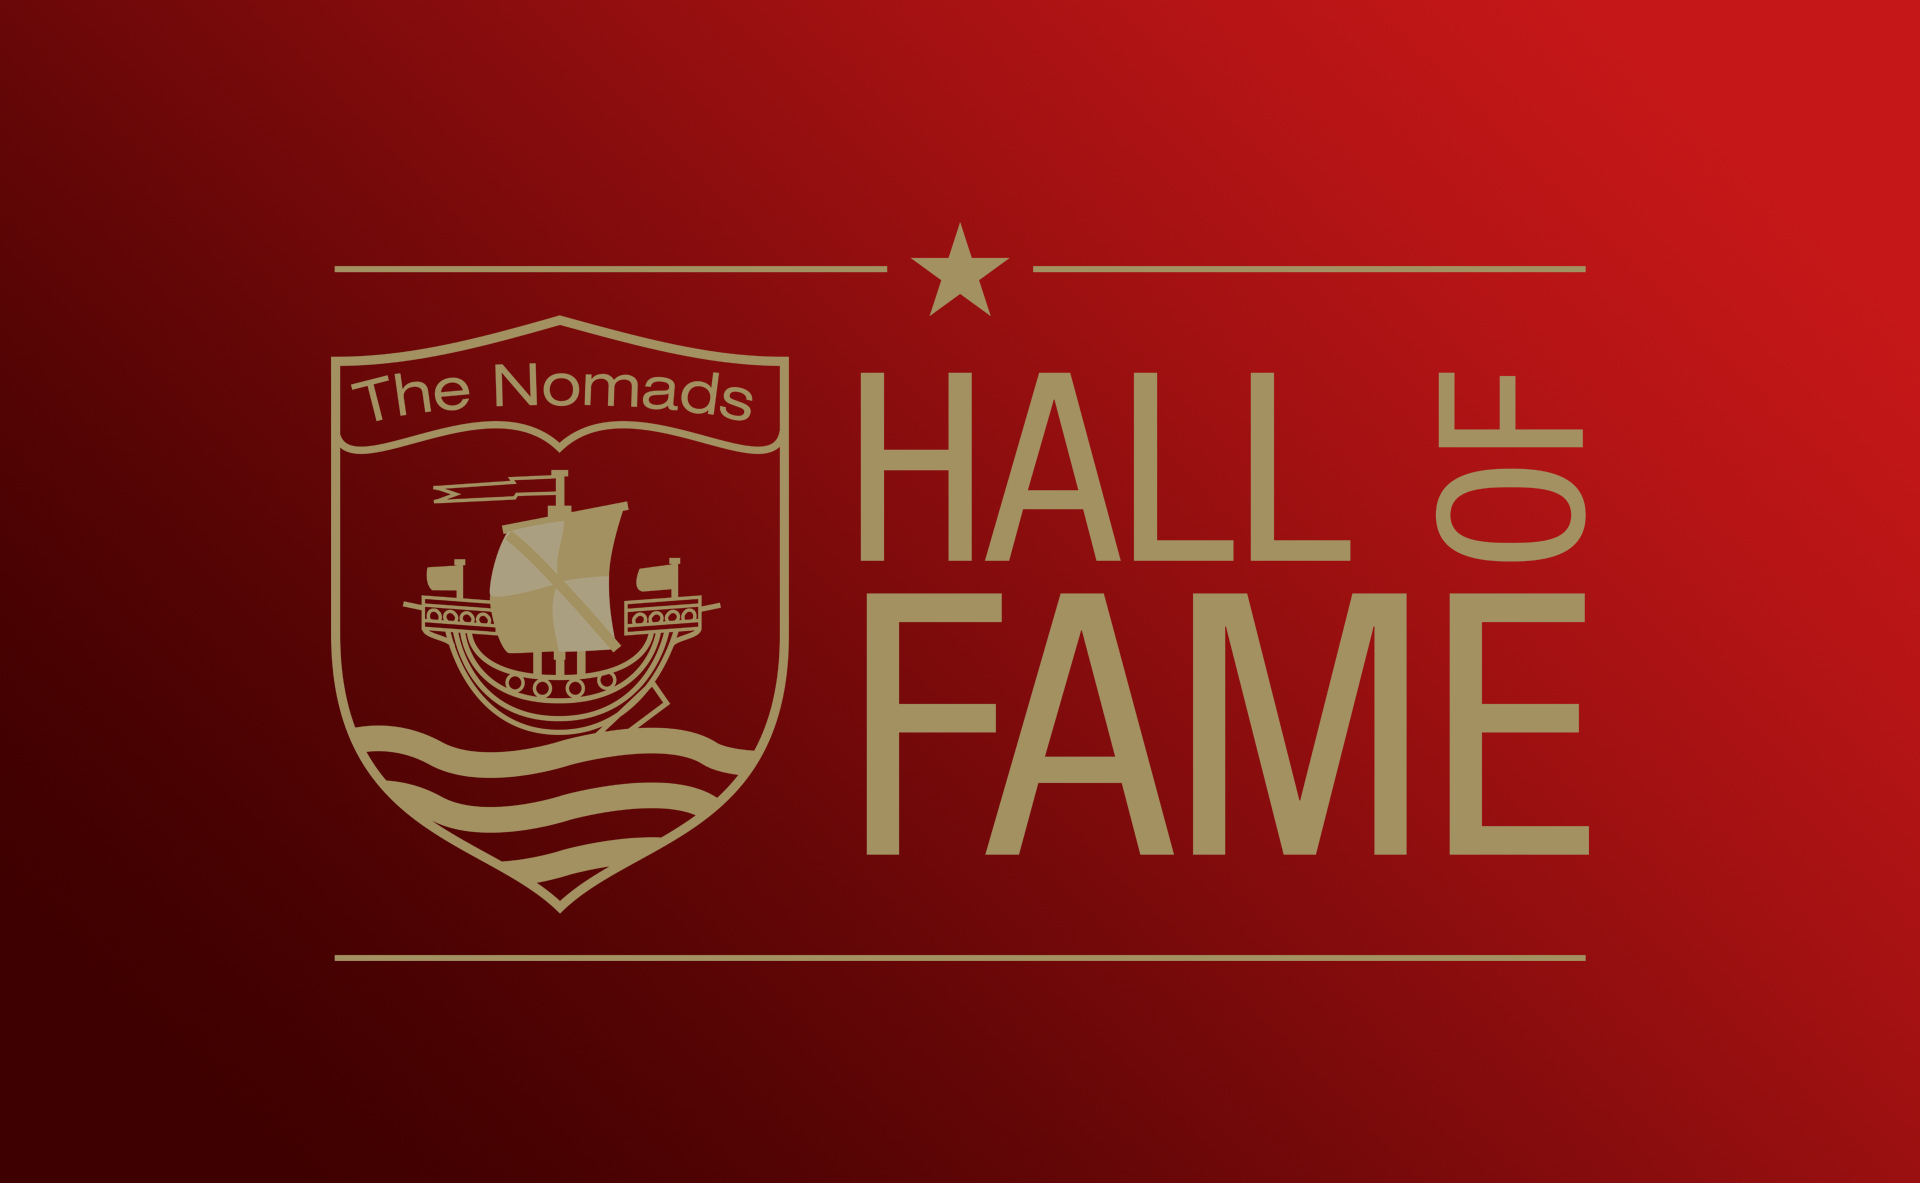 Connah's Quay Nomads Hall of Fame